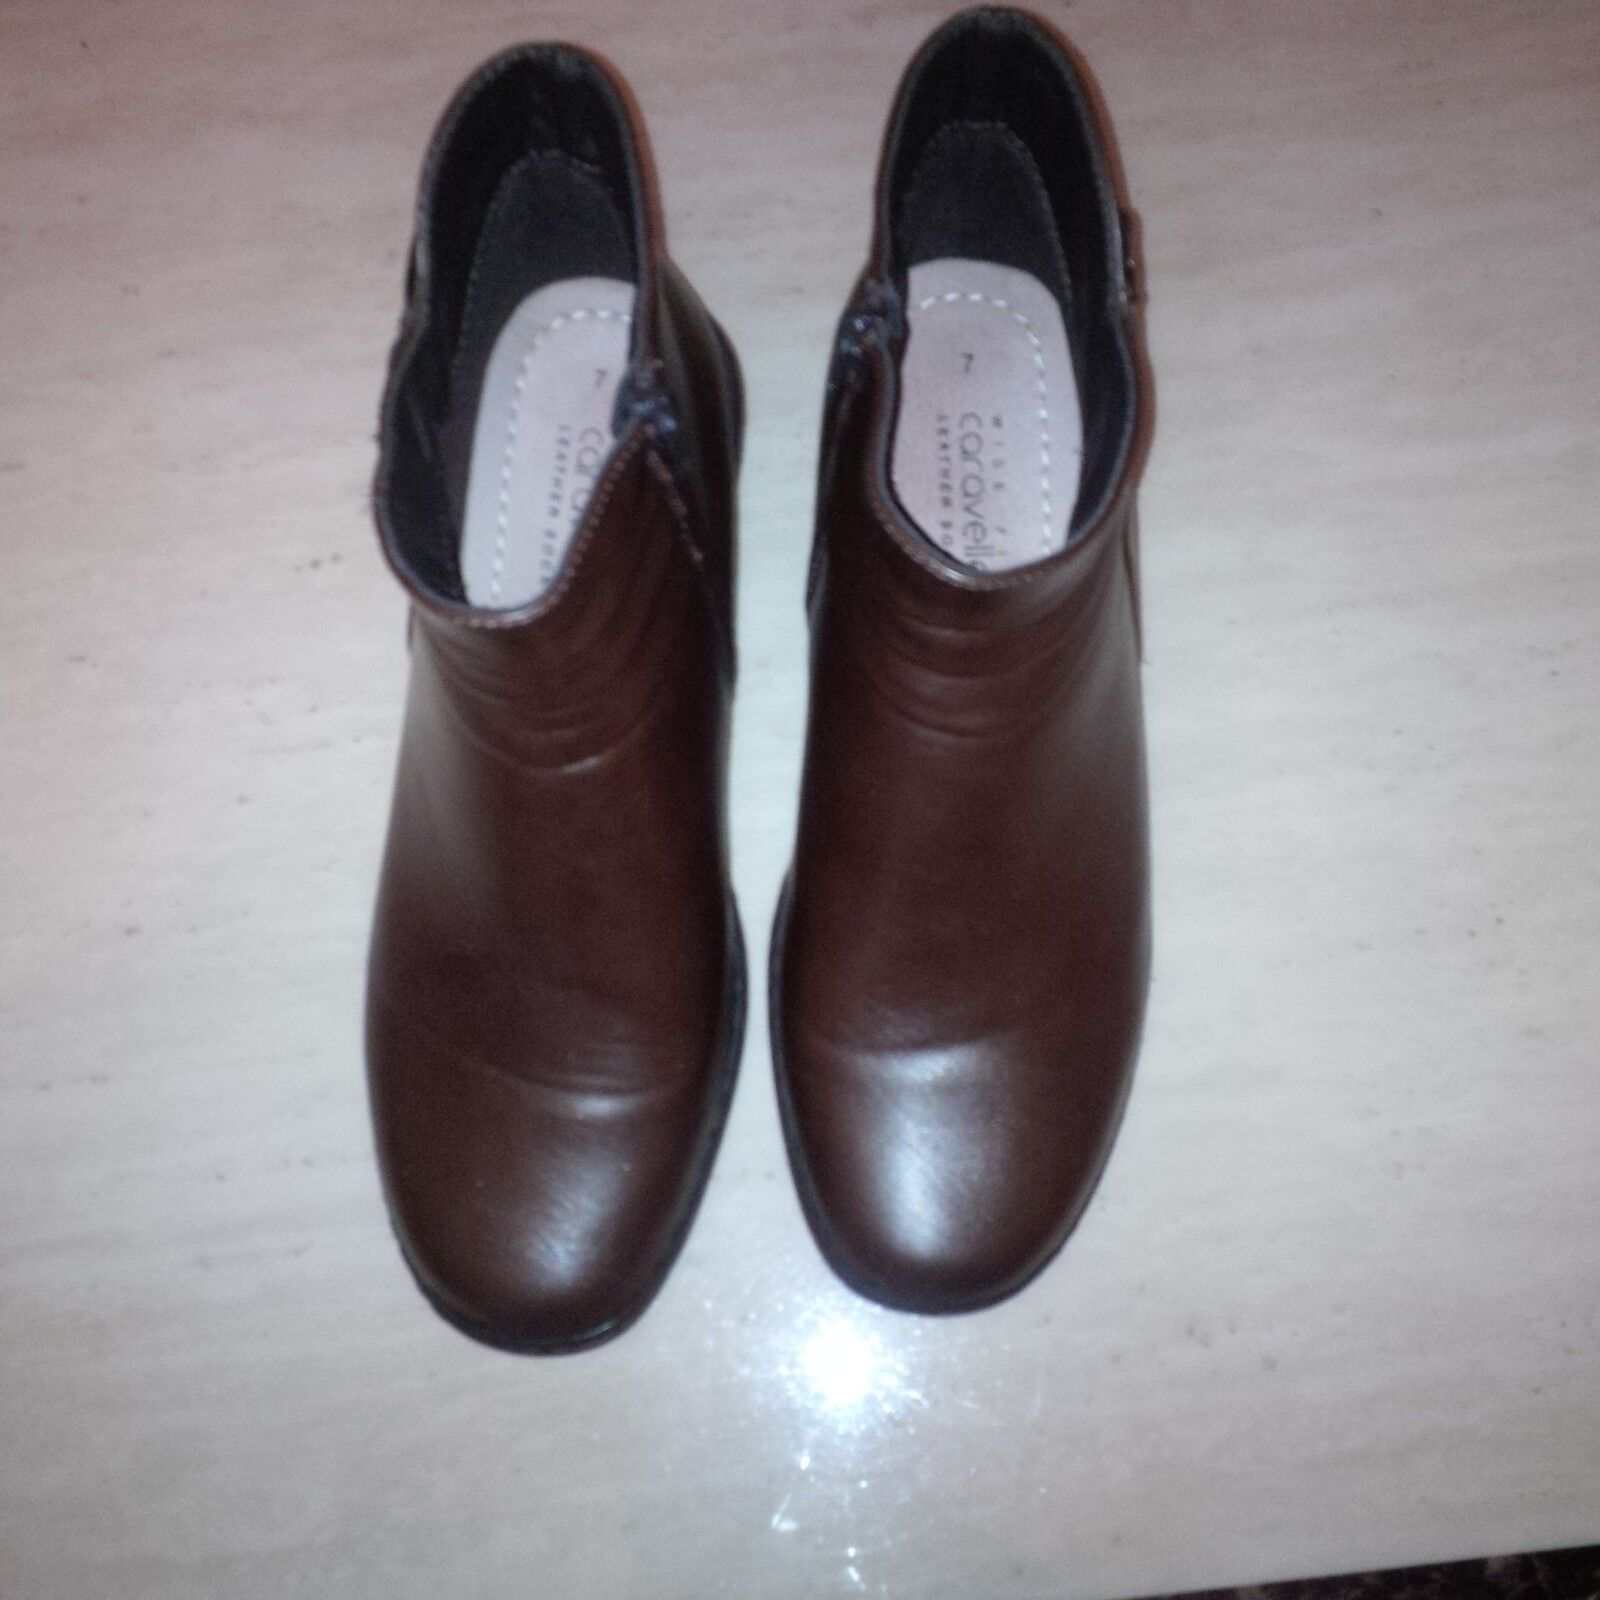 Caravelle  Ankle   boots size 7  NEW  UK FREE POST GREAT   GIFT